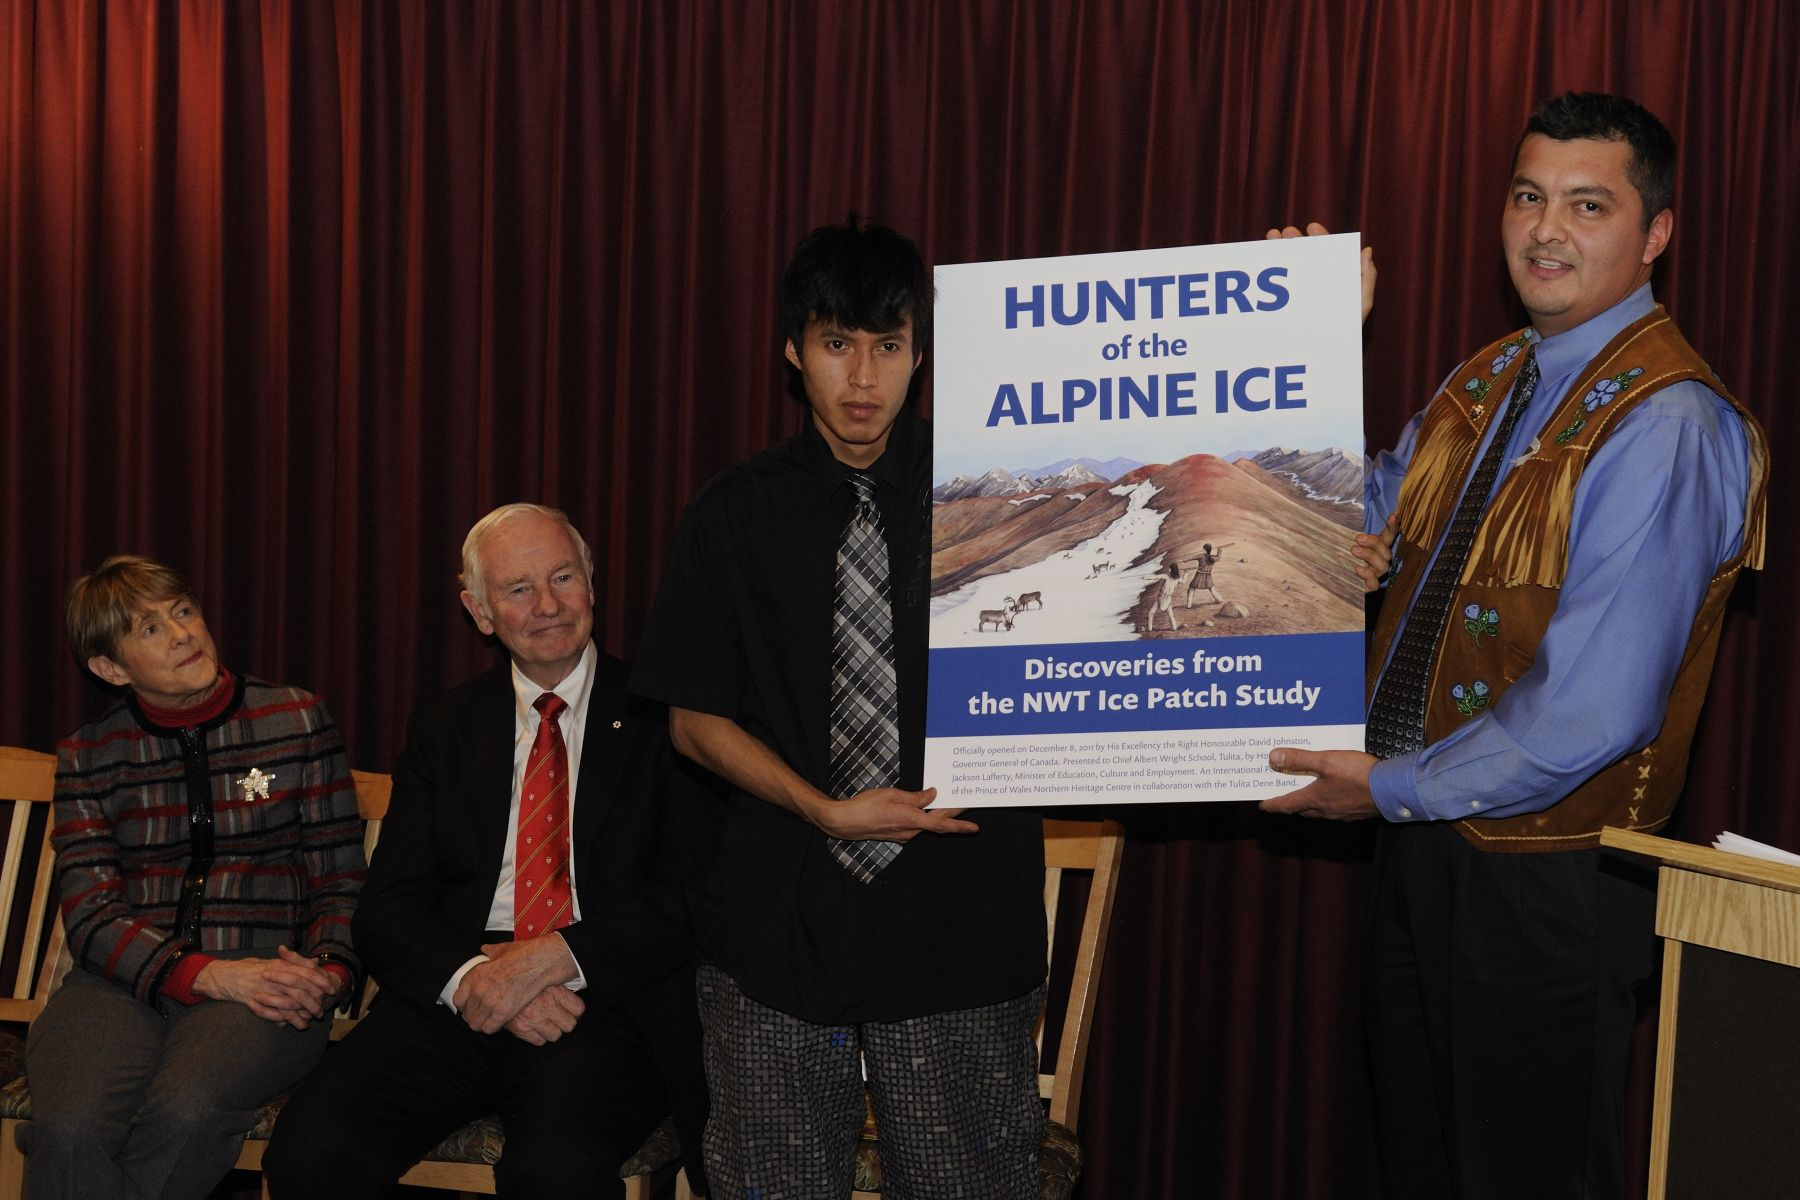 The Honourable Jackson Lafferty, Minister of Education, Culture and Employment presented the new exhibit, which is based on the book Hunters of the Alpine Ice: The NWT Ice Patch Study, which draws on the expertise of archaeologists, Aboriginal Elders, biologists, geologists and educators to highlight what the North was like as far back as 5 000 years ago.